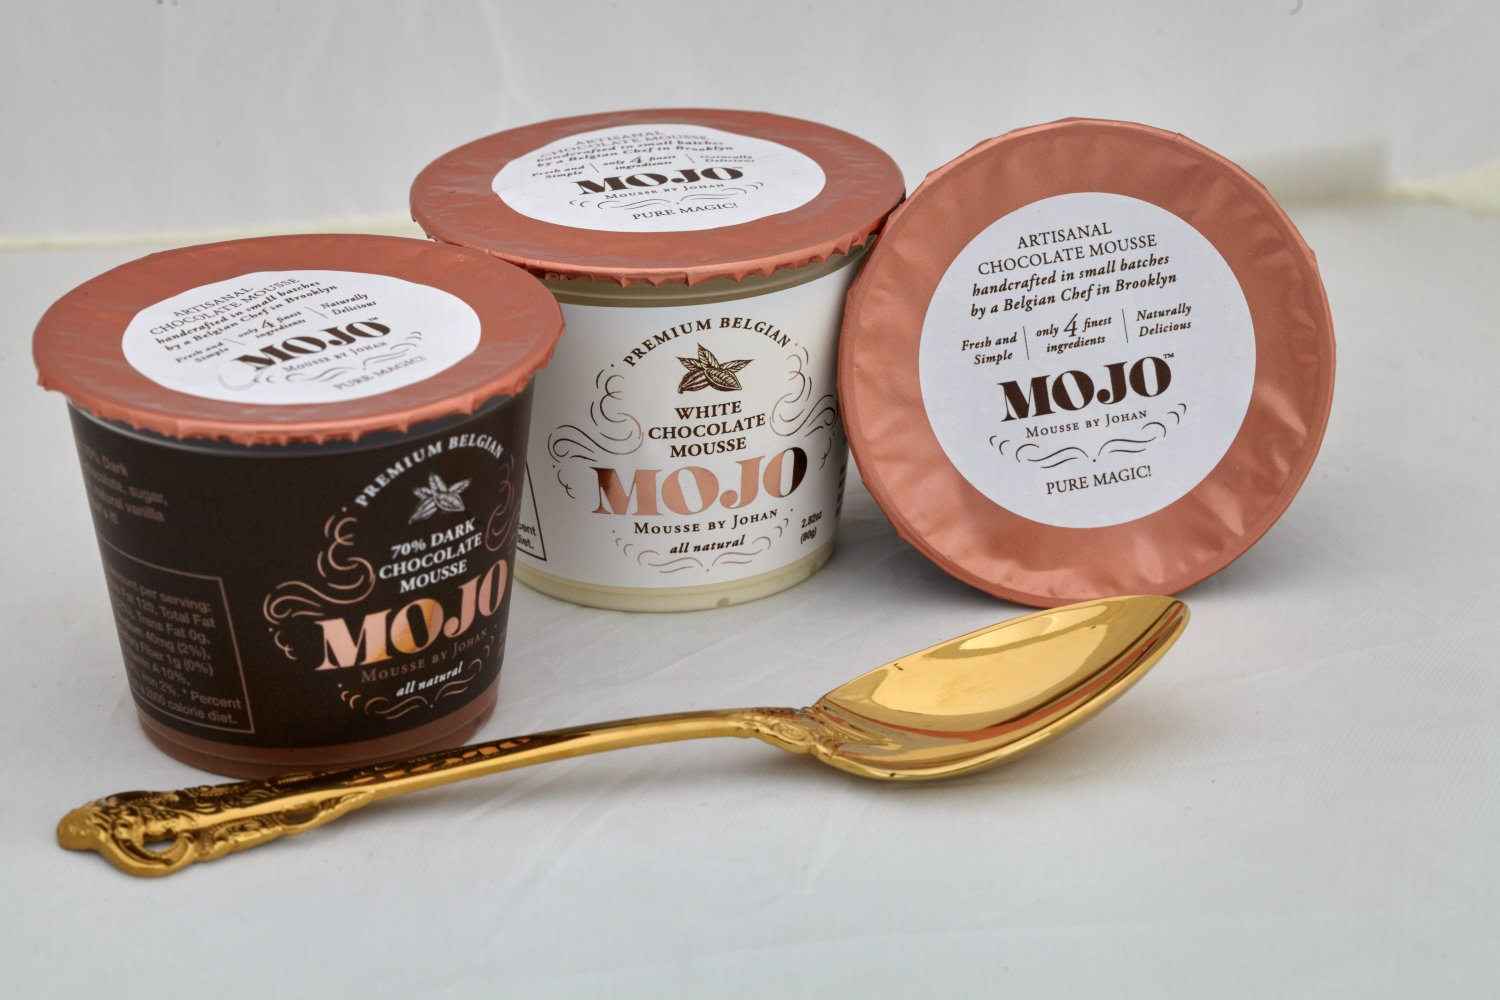 Amazon.com : MOJO Belgian Chocolate Mousse, Assortment 6 Pack (2 of each) : Grocery & Gourmet Food